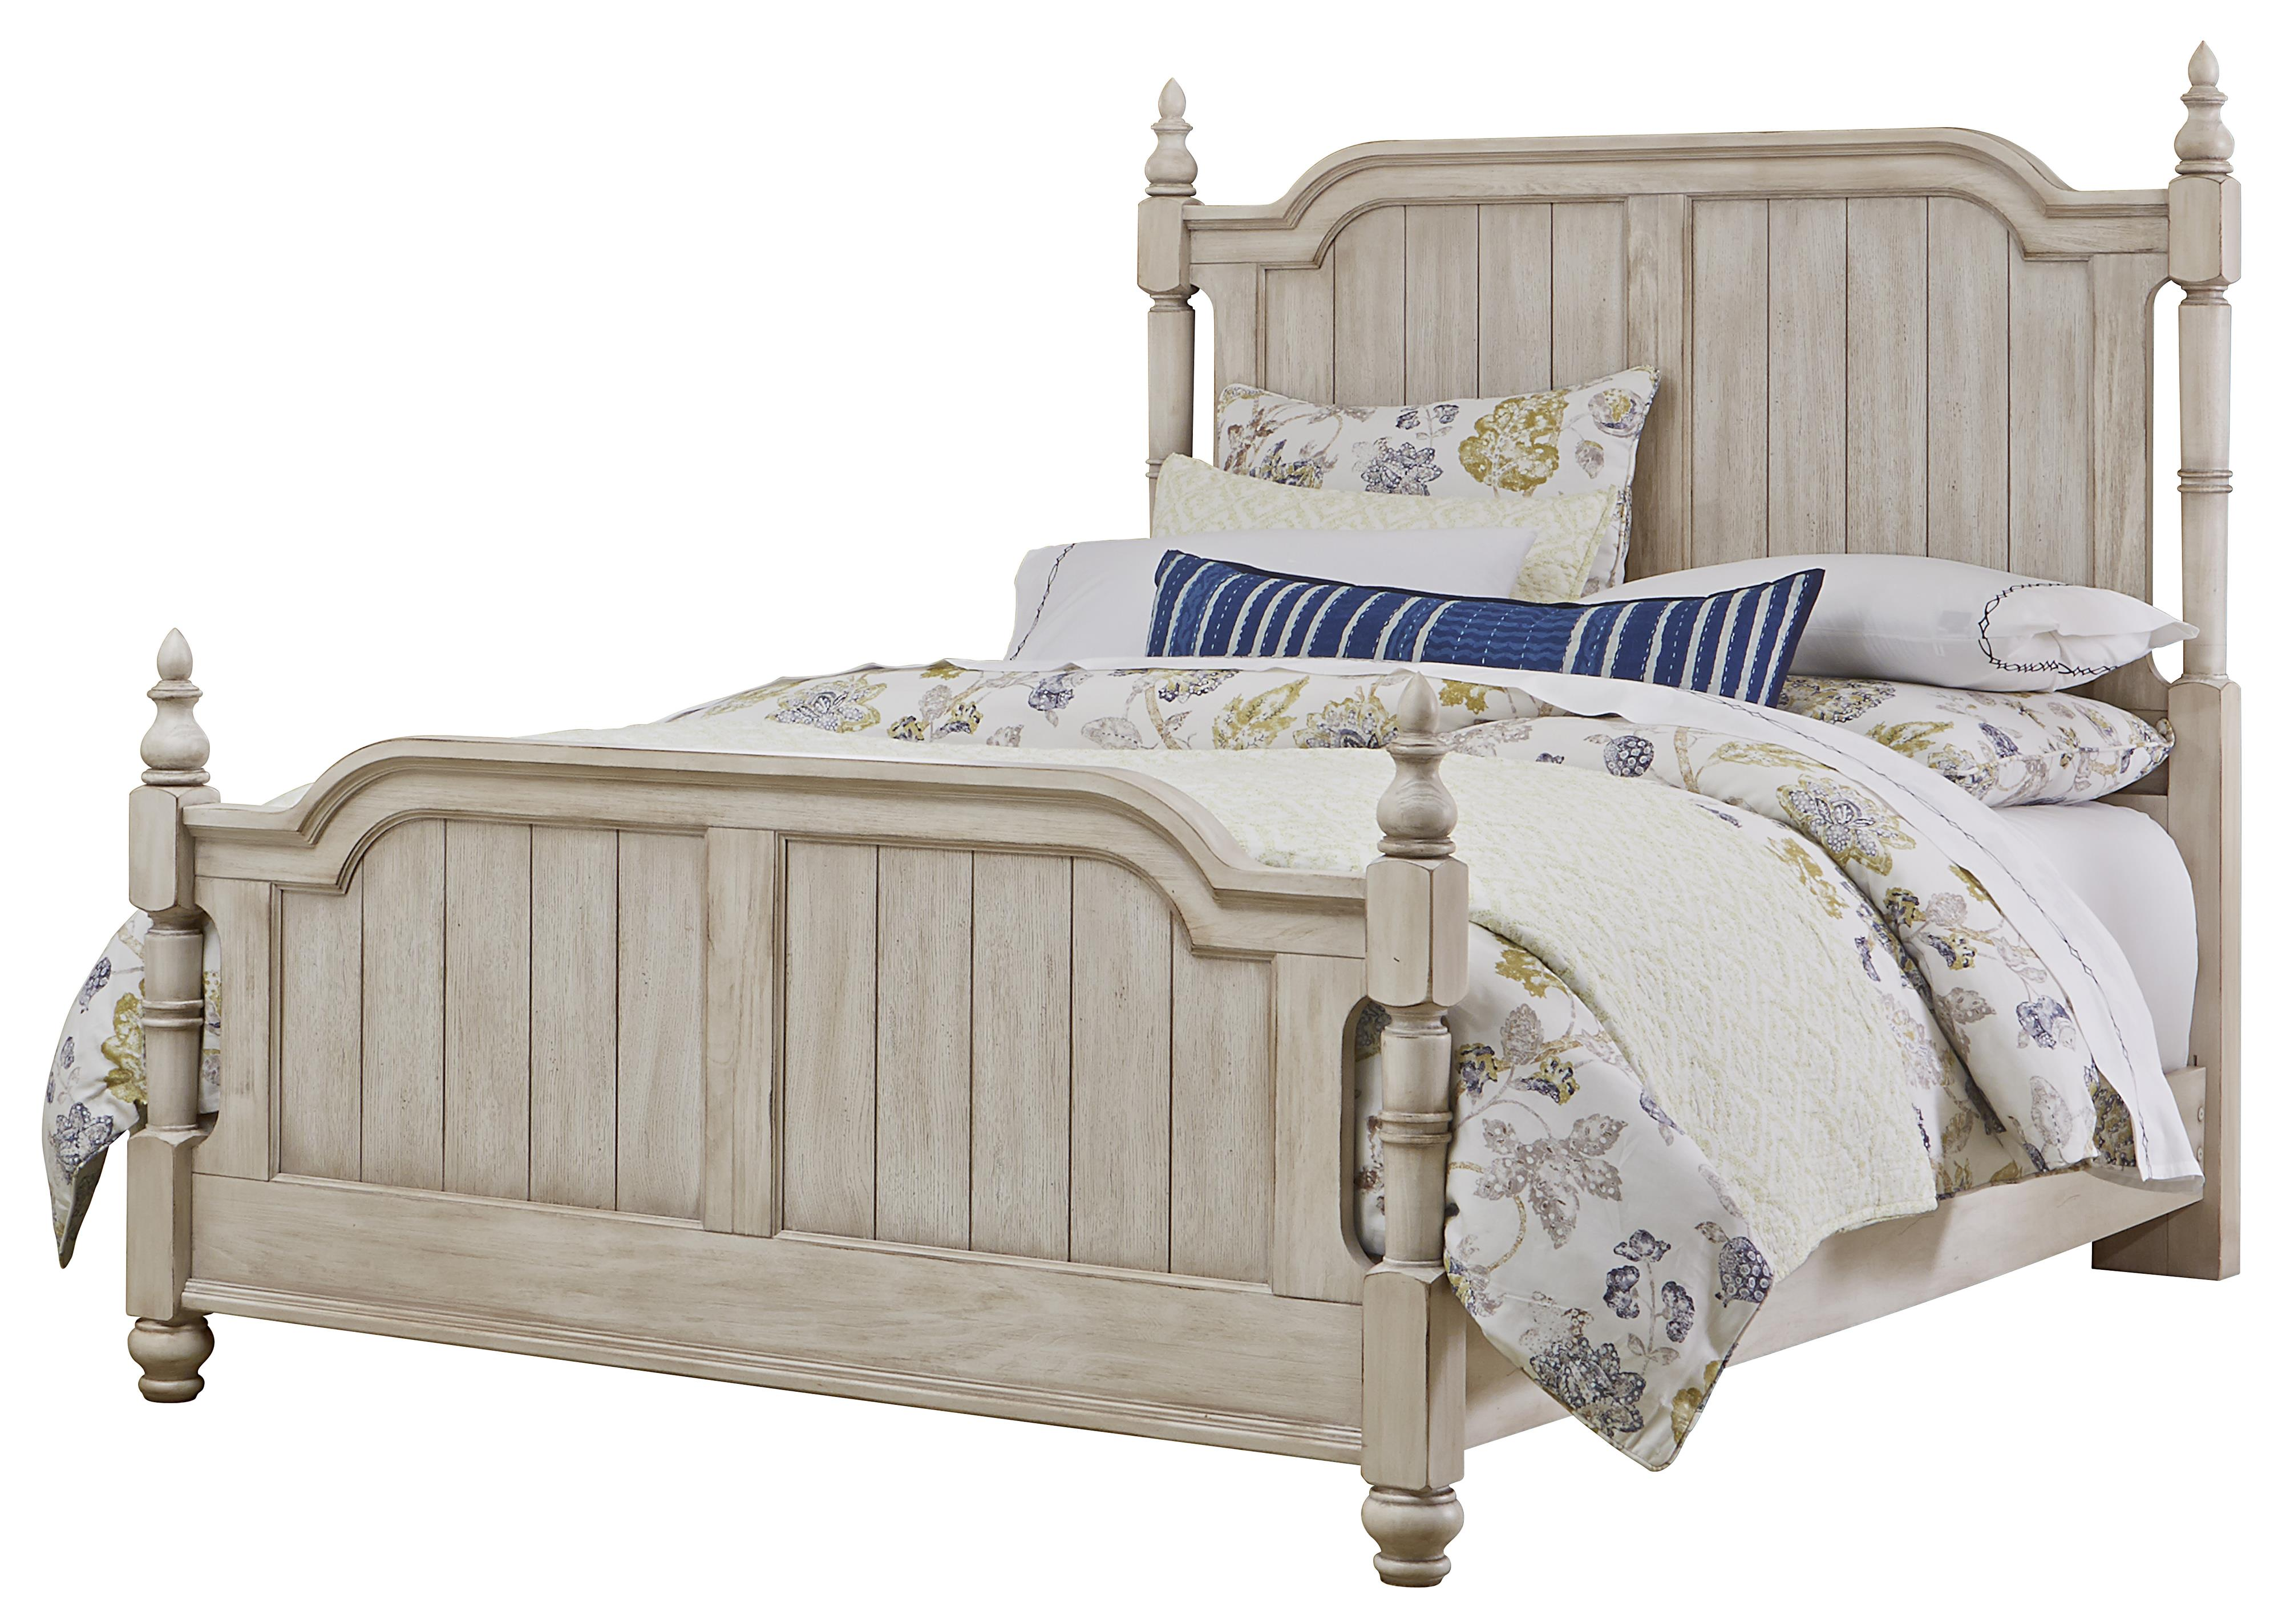 Vaughan Bassett Arrendelle Transitional Queen Poster Bed